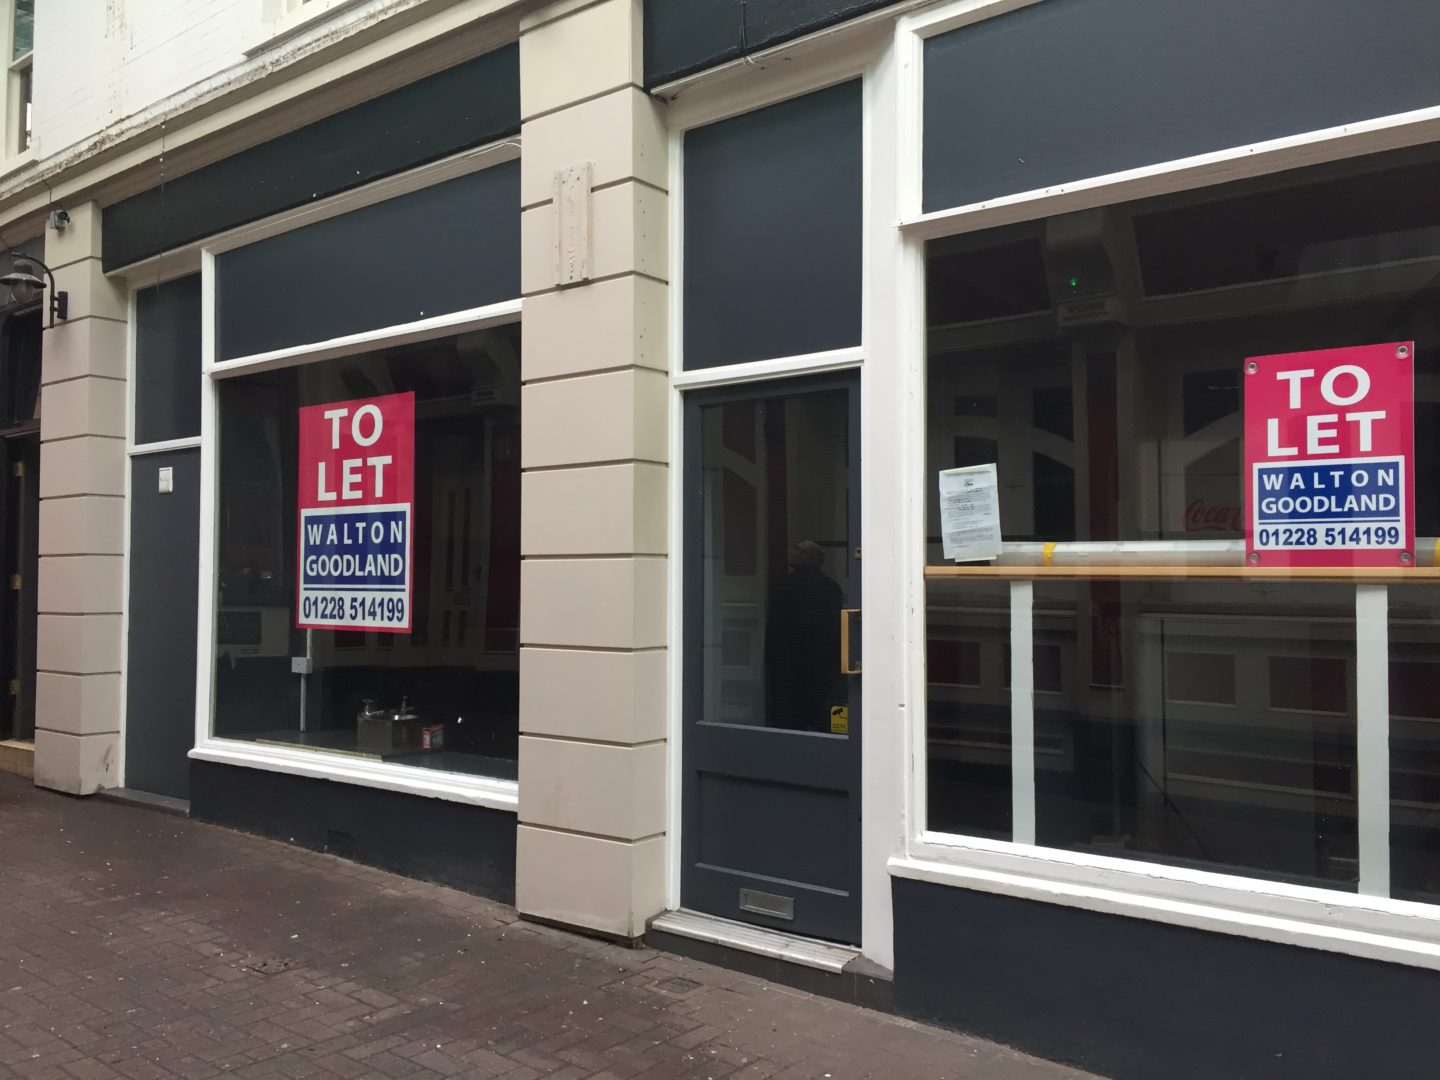 2-4 Lowther Arcade, Carlisle – UNDER OFFER